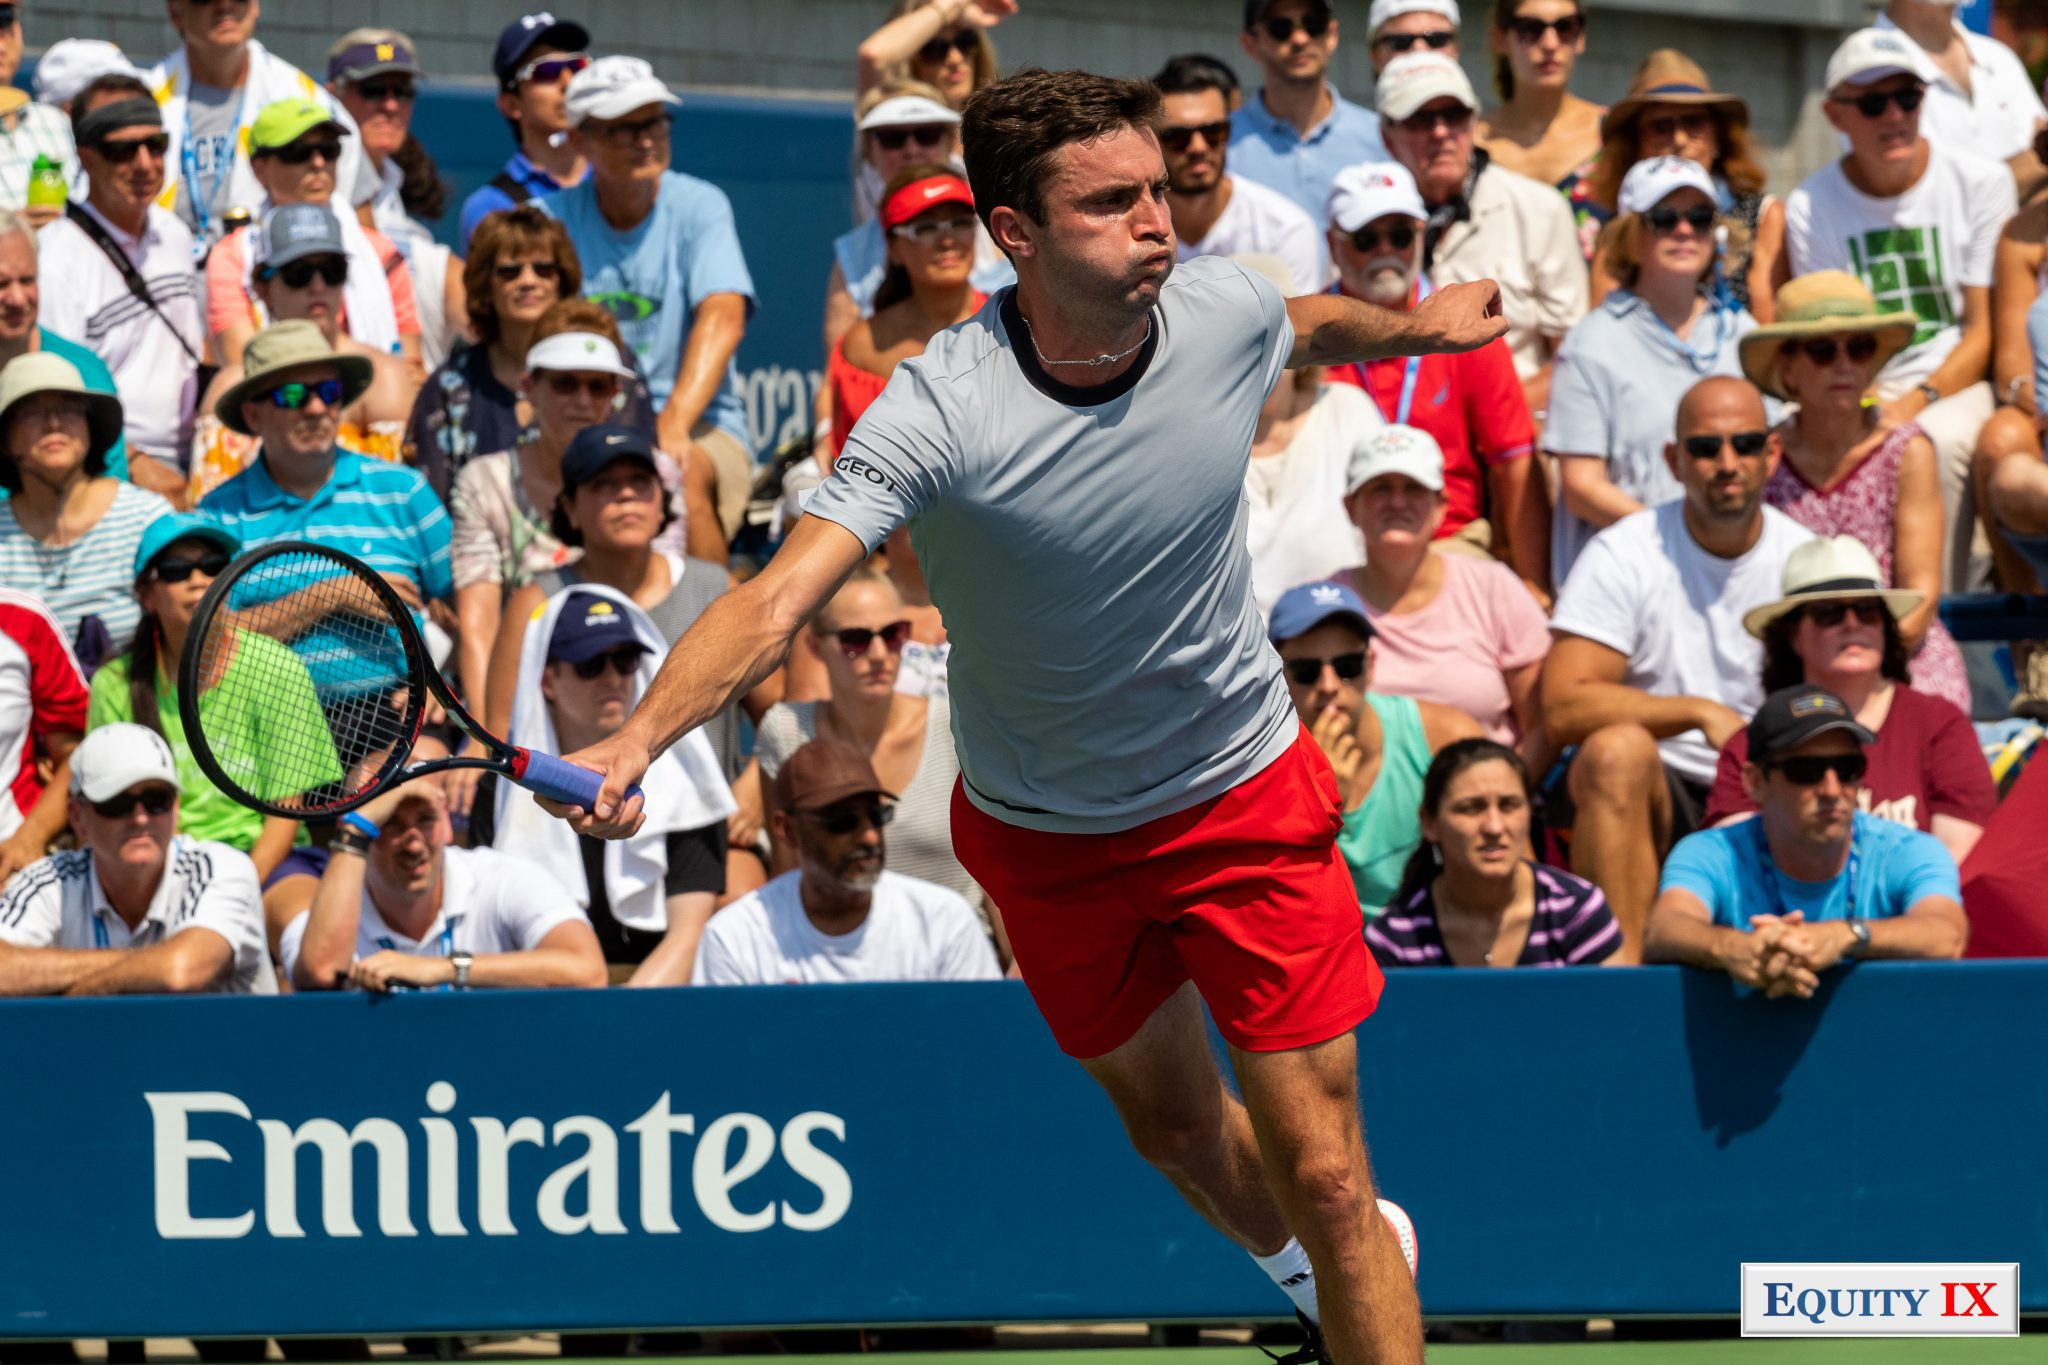 2018 US Open Tennis Championship - Gilles Simon (France) is fully stretched out on a return of serve on the forehand side with air in his cheeks before he breathes out to hit the ball in very shirt and red Adidas shorts © Equity IX - SportsOgram - Leigh Ernst Friestedt